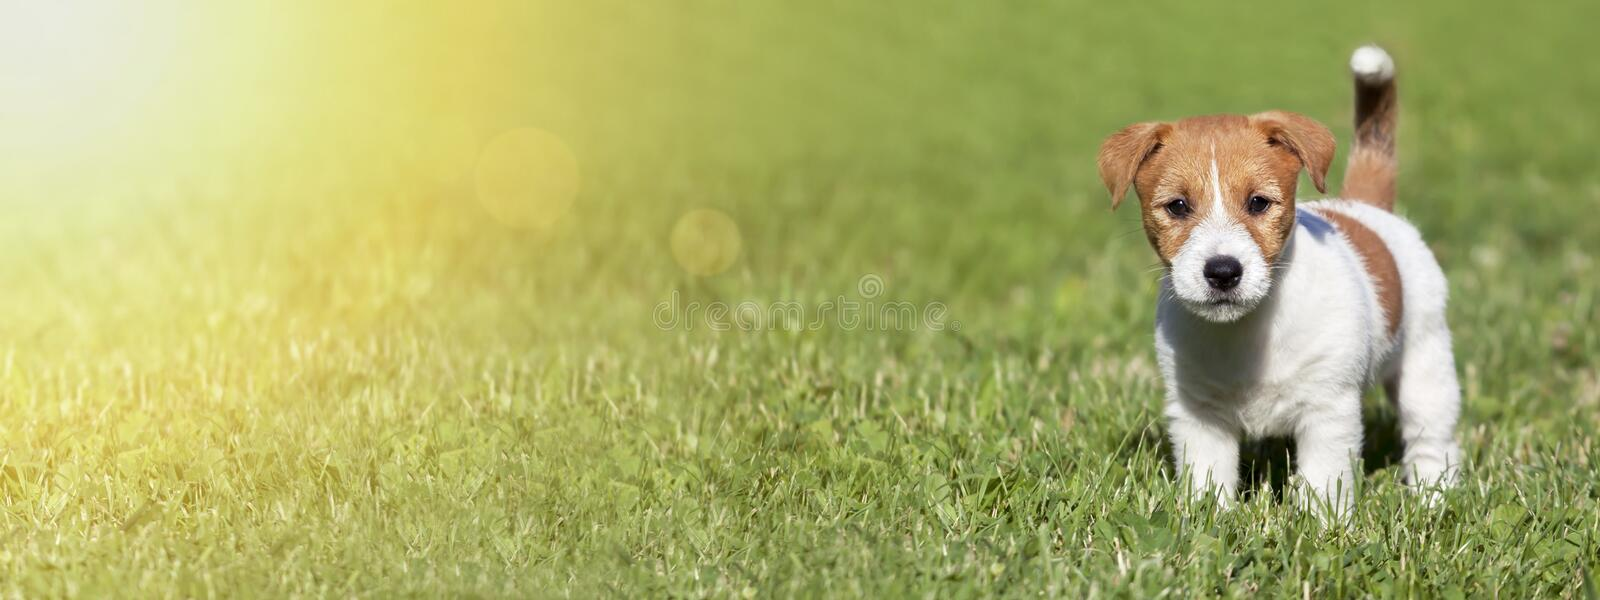 Pet summer concept, banner of a cute dog puppy as standing in the grass stock image